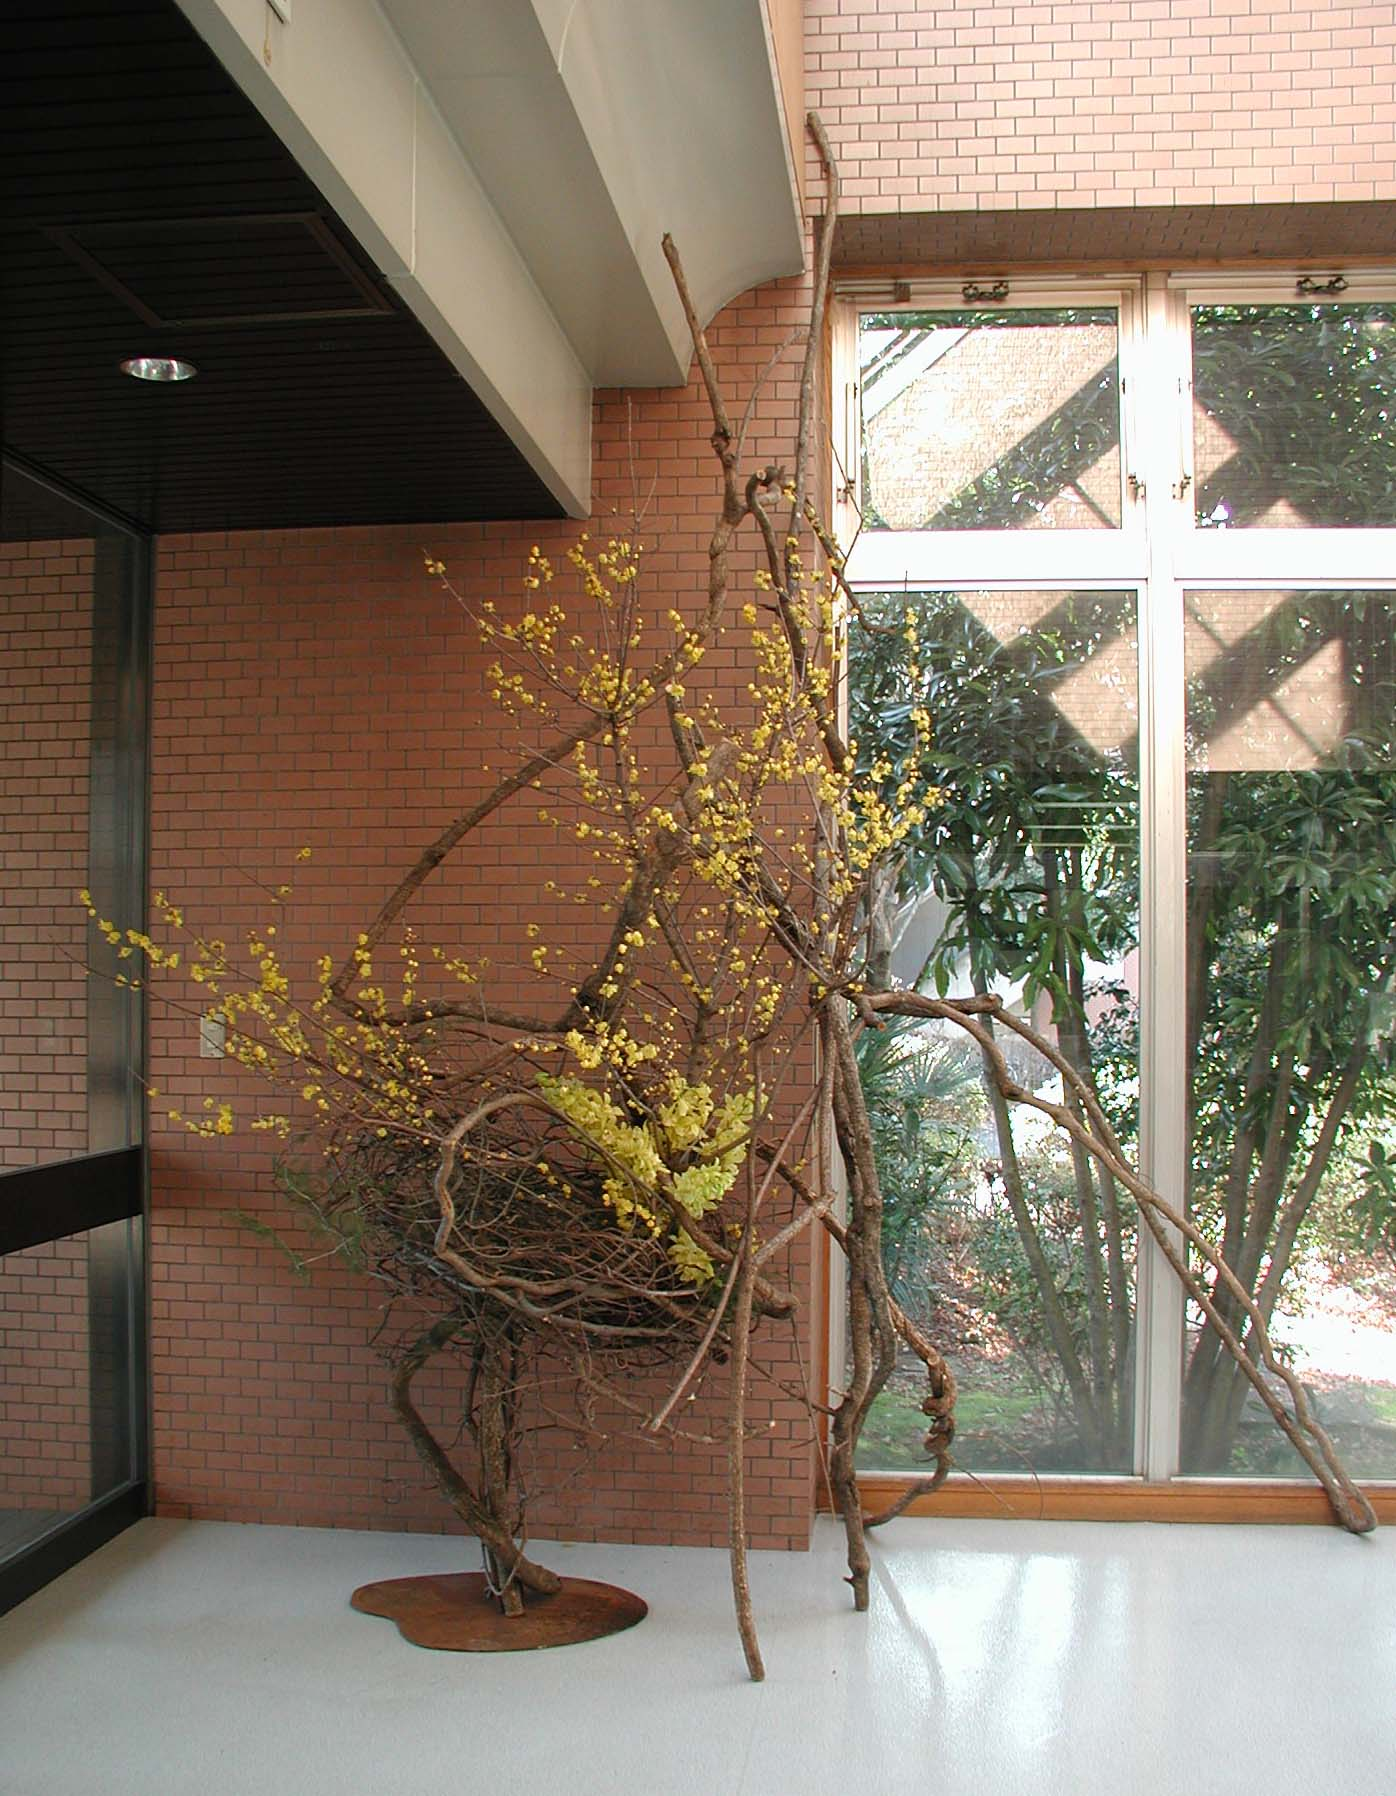 2008  祖師谷留学生会館ロビー<br>